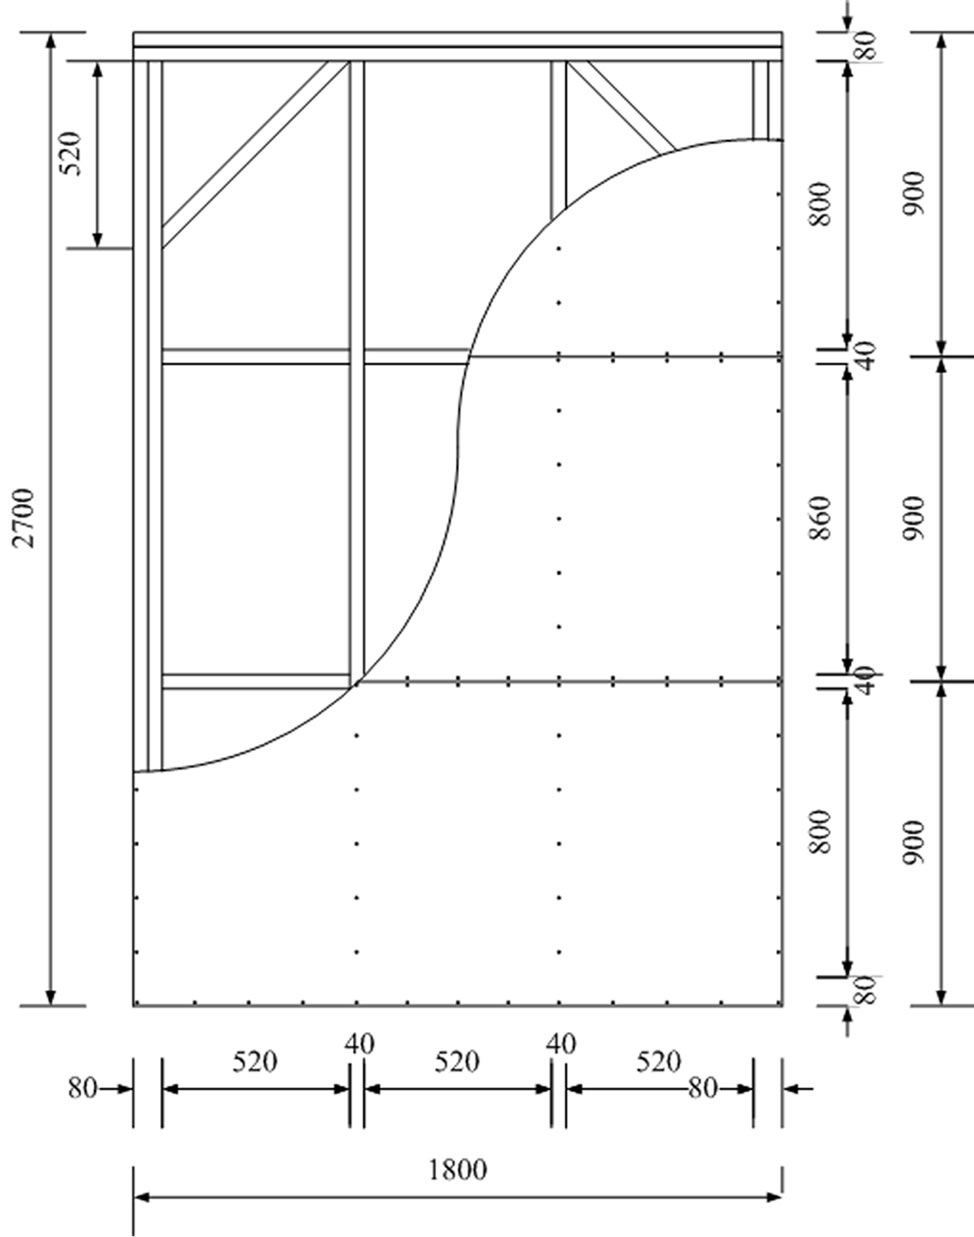 Prediction of nonlinear cyclic behaviors of shear wall Structural fiberboard sheathing